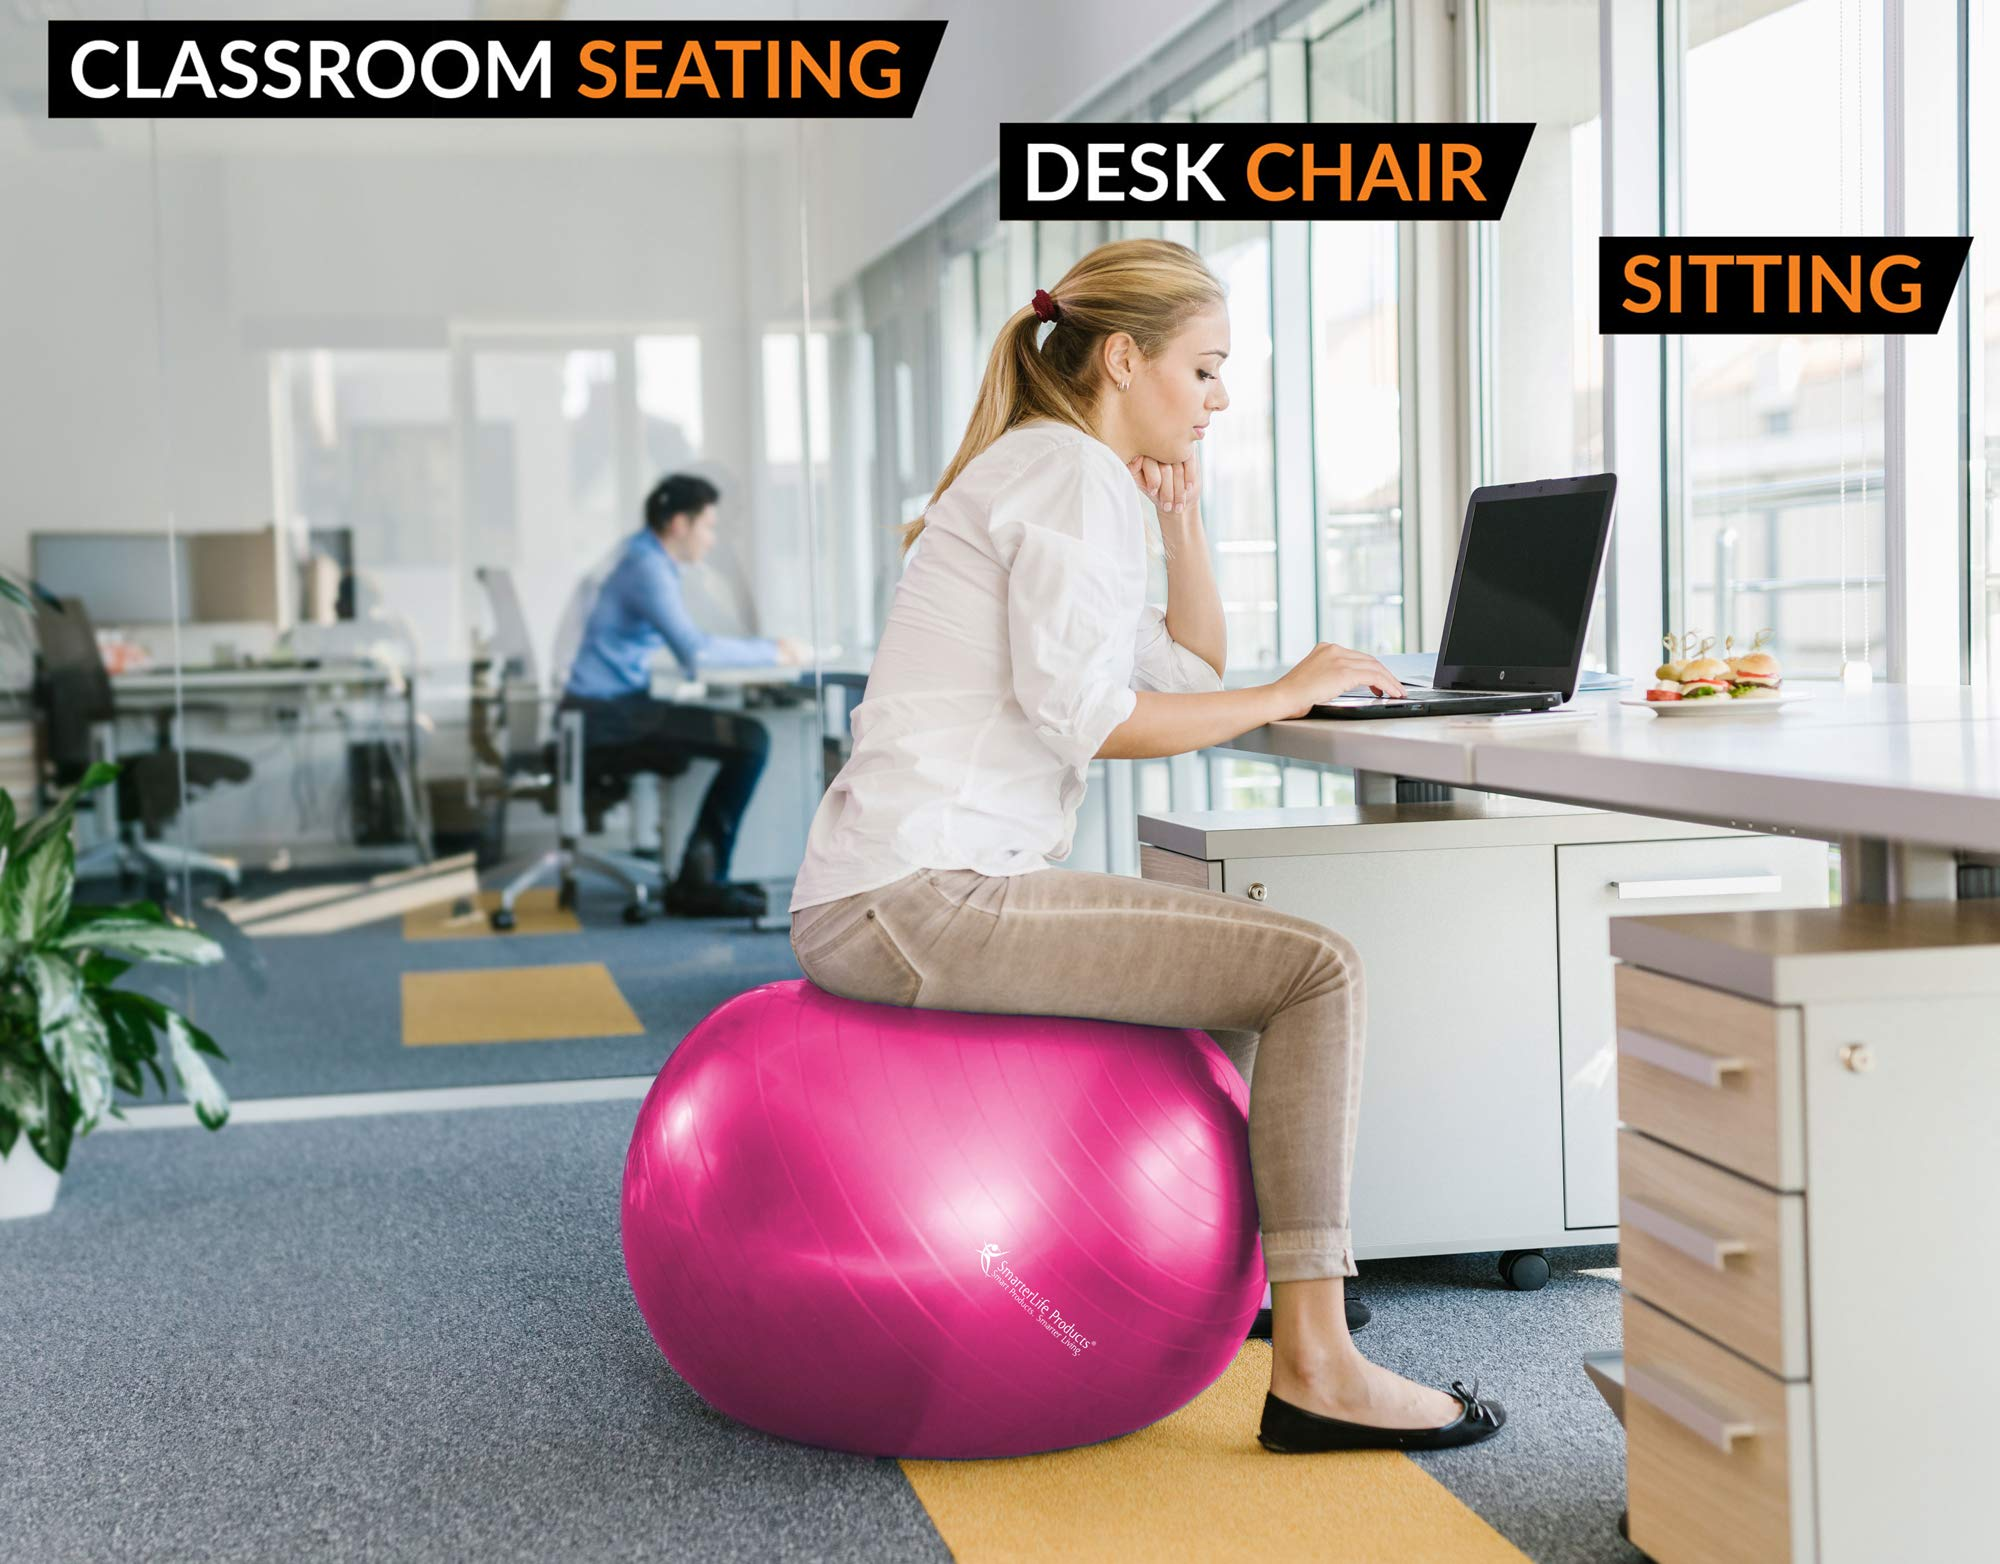 Exercise Ball for Yoga, Balance, Stability from SmarterLife - Fitness, Pilates, Birthing, Therapy, Office Ball Chair, Classroom Flexible Seating - Anti Burst, Non Slip + Workout Guide (Fuchsia, 45 cm) by SmarterLife Products (Image #6)